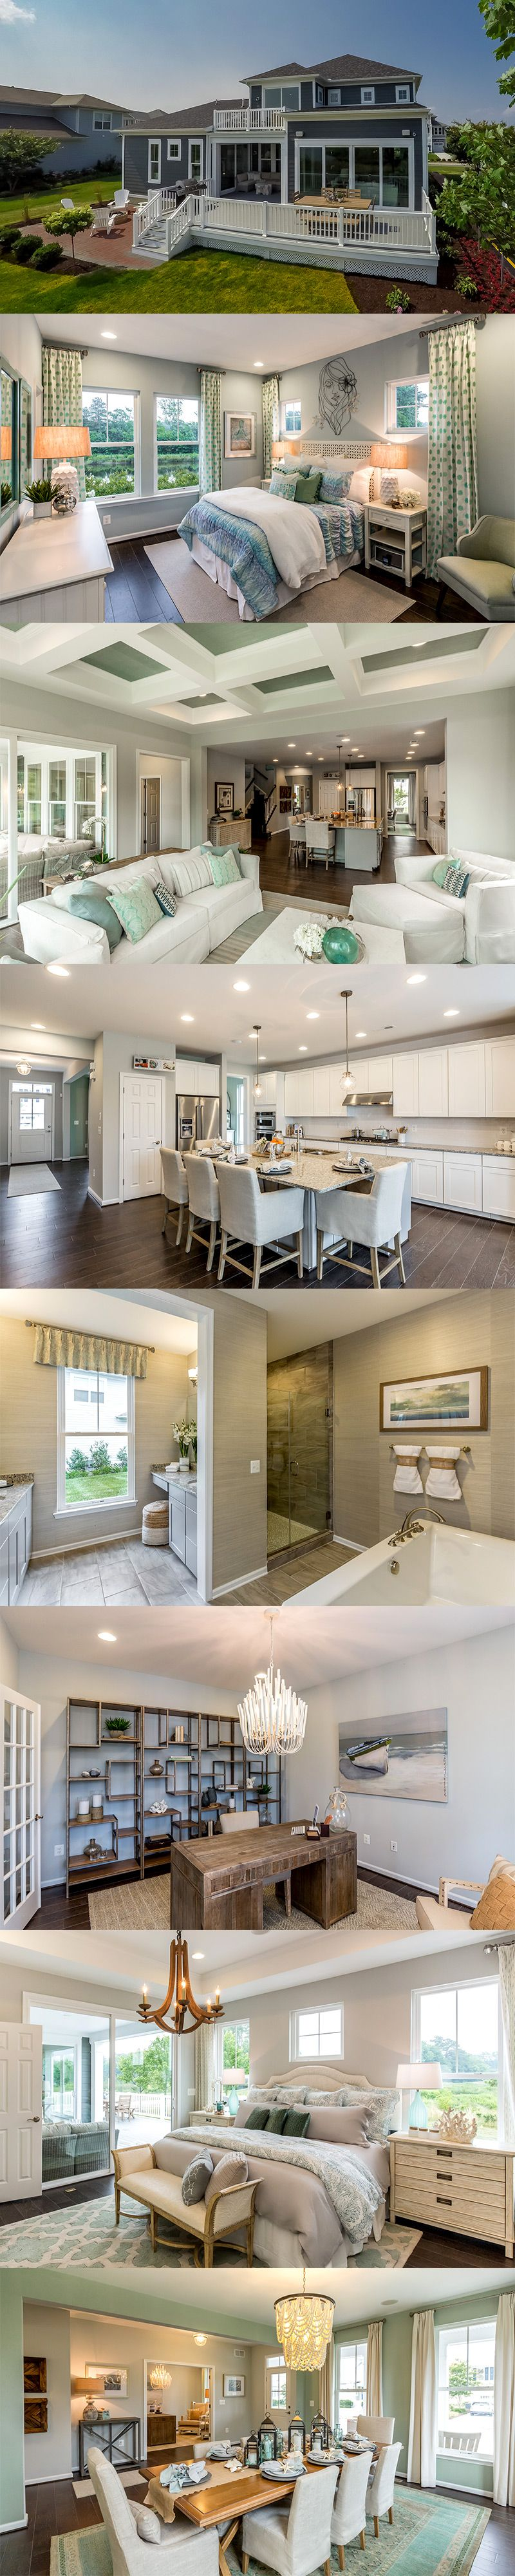 New home builders pulte also best homes to die for images in future house modern rh pinterest